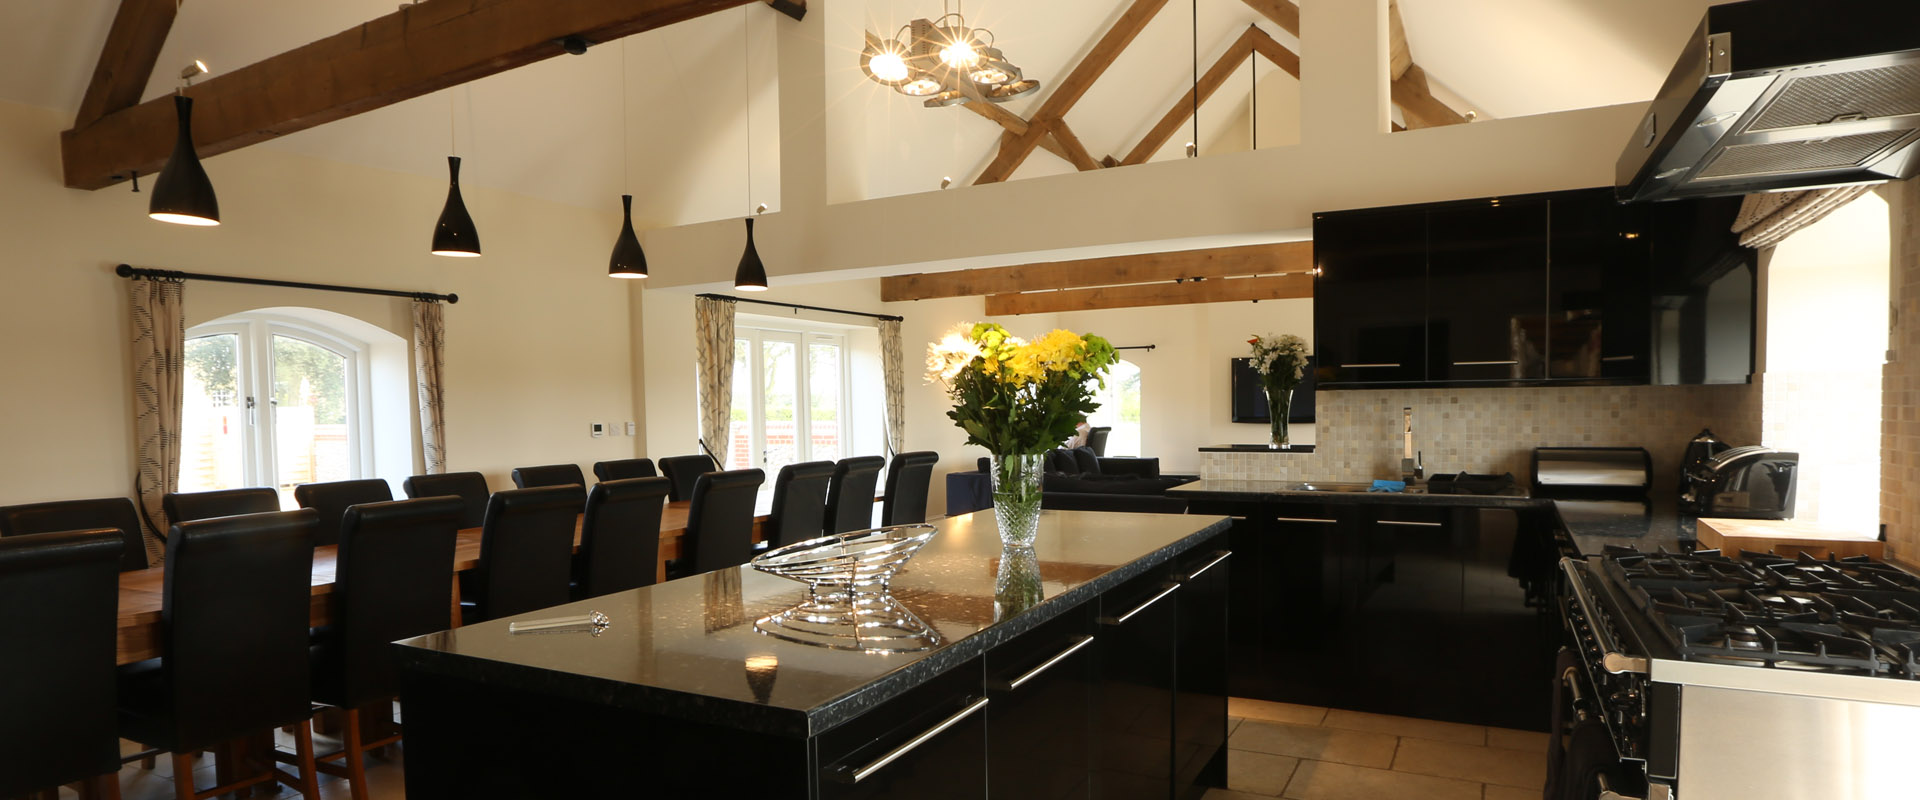 The Barn - Kitchen and Dining Area